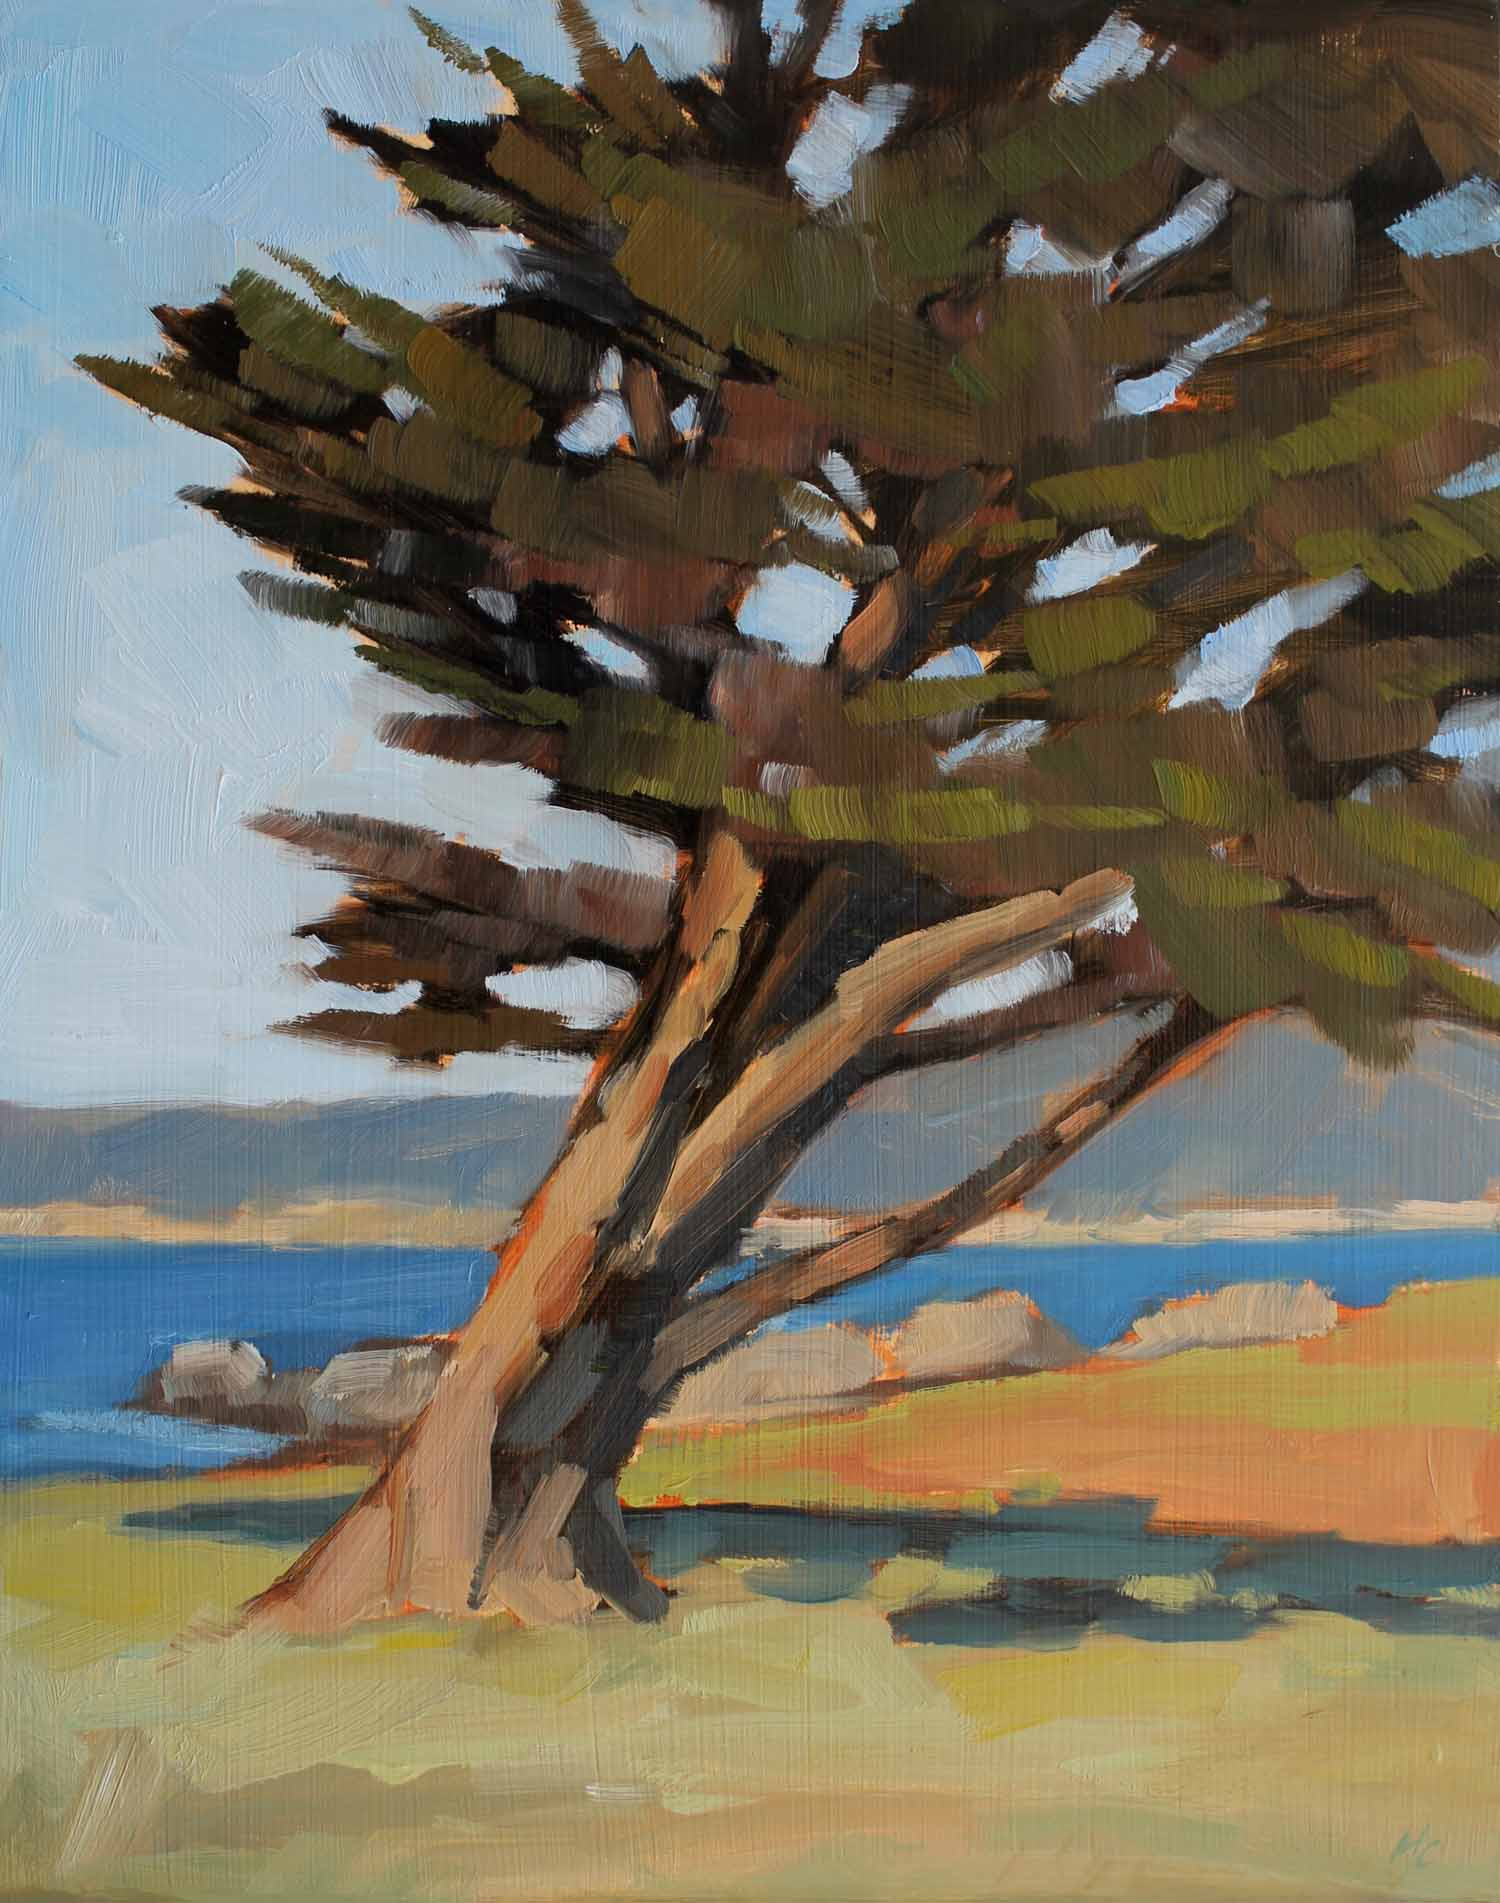 Leaning Cypress, Pacific Grove